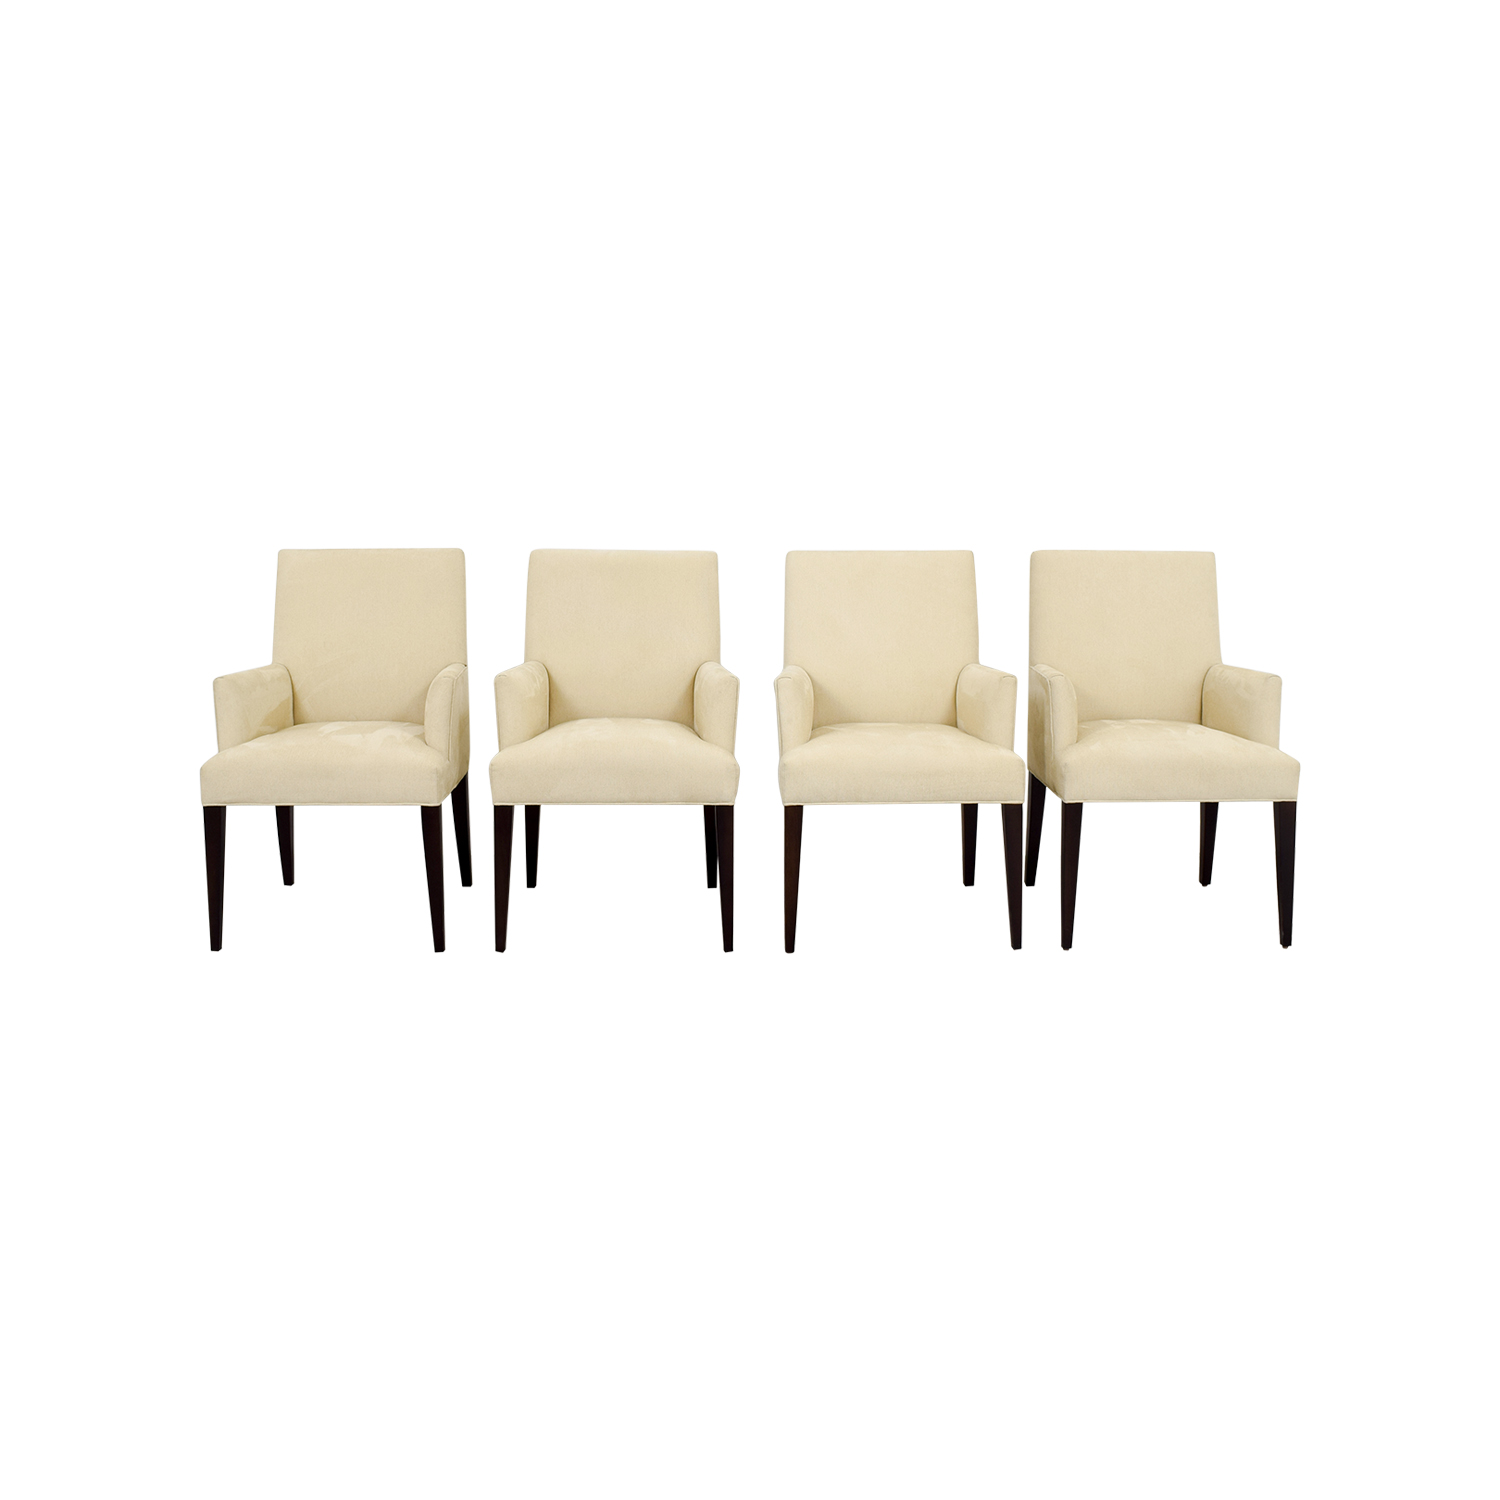 Crate & Barrel Crate & Barrel Miles Dining Chairs on sale